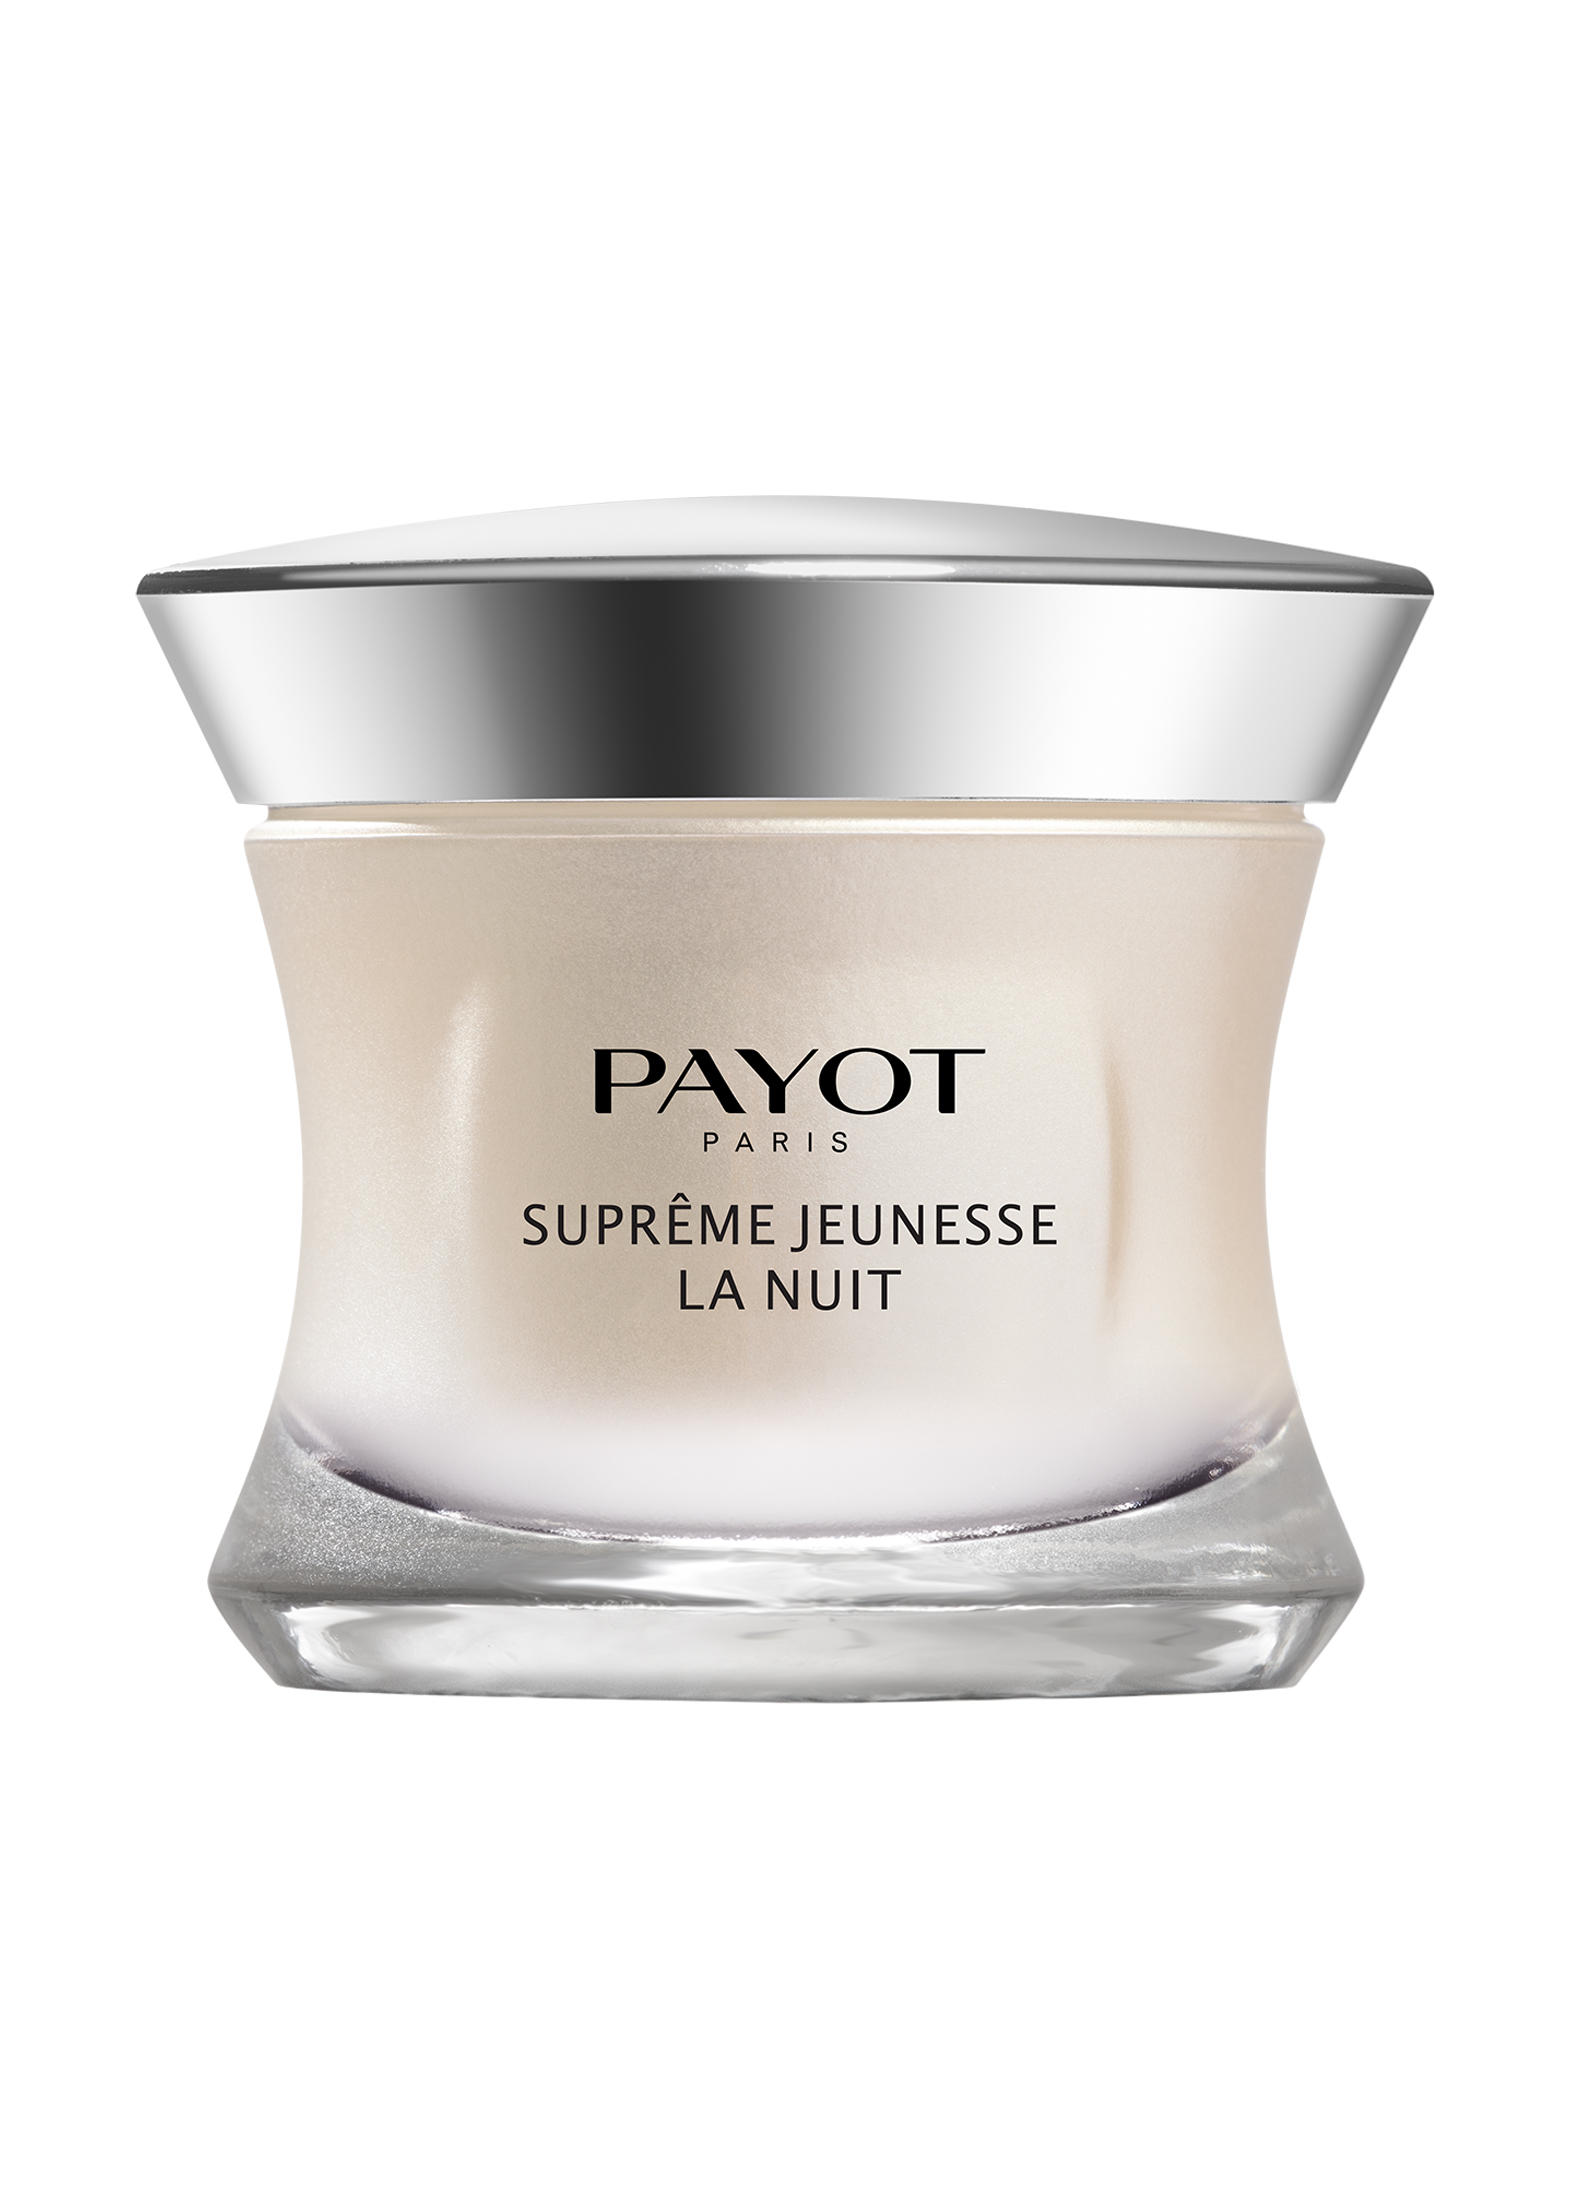 PAYOT, SUPREME JEUNESSE NUIT 50ML image number 0